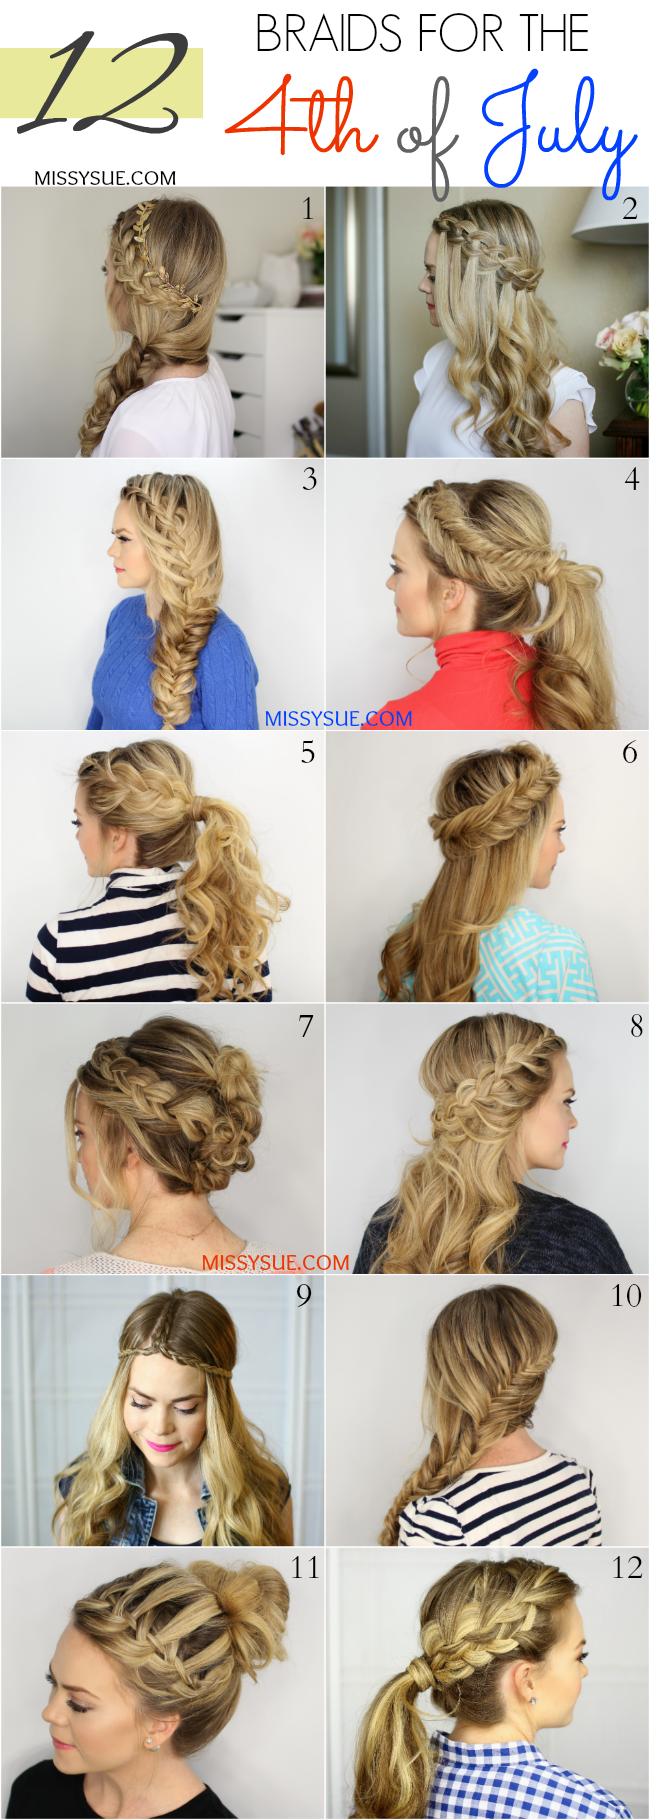 12 braids for the 4th of july | hair tutorials | hair styles